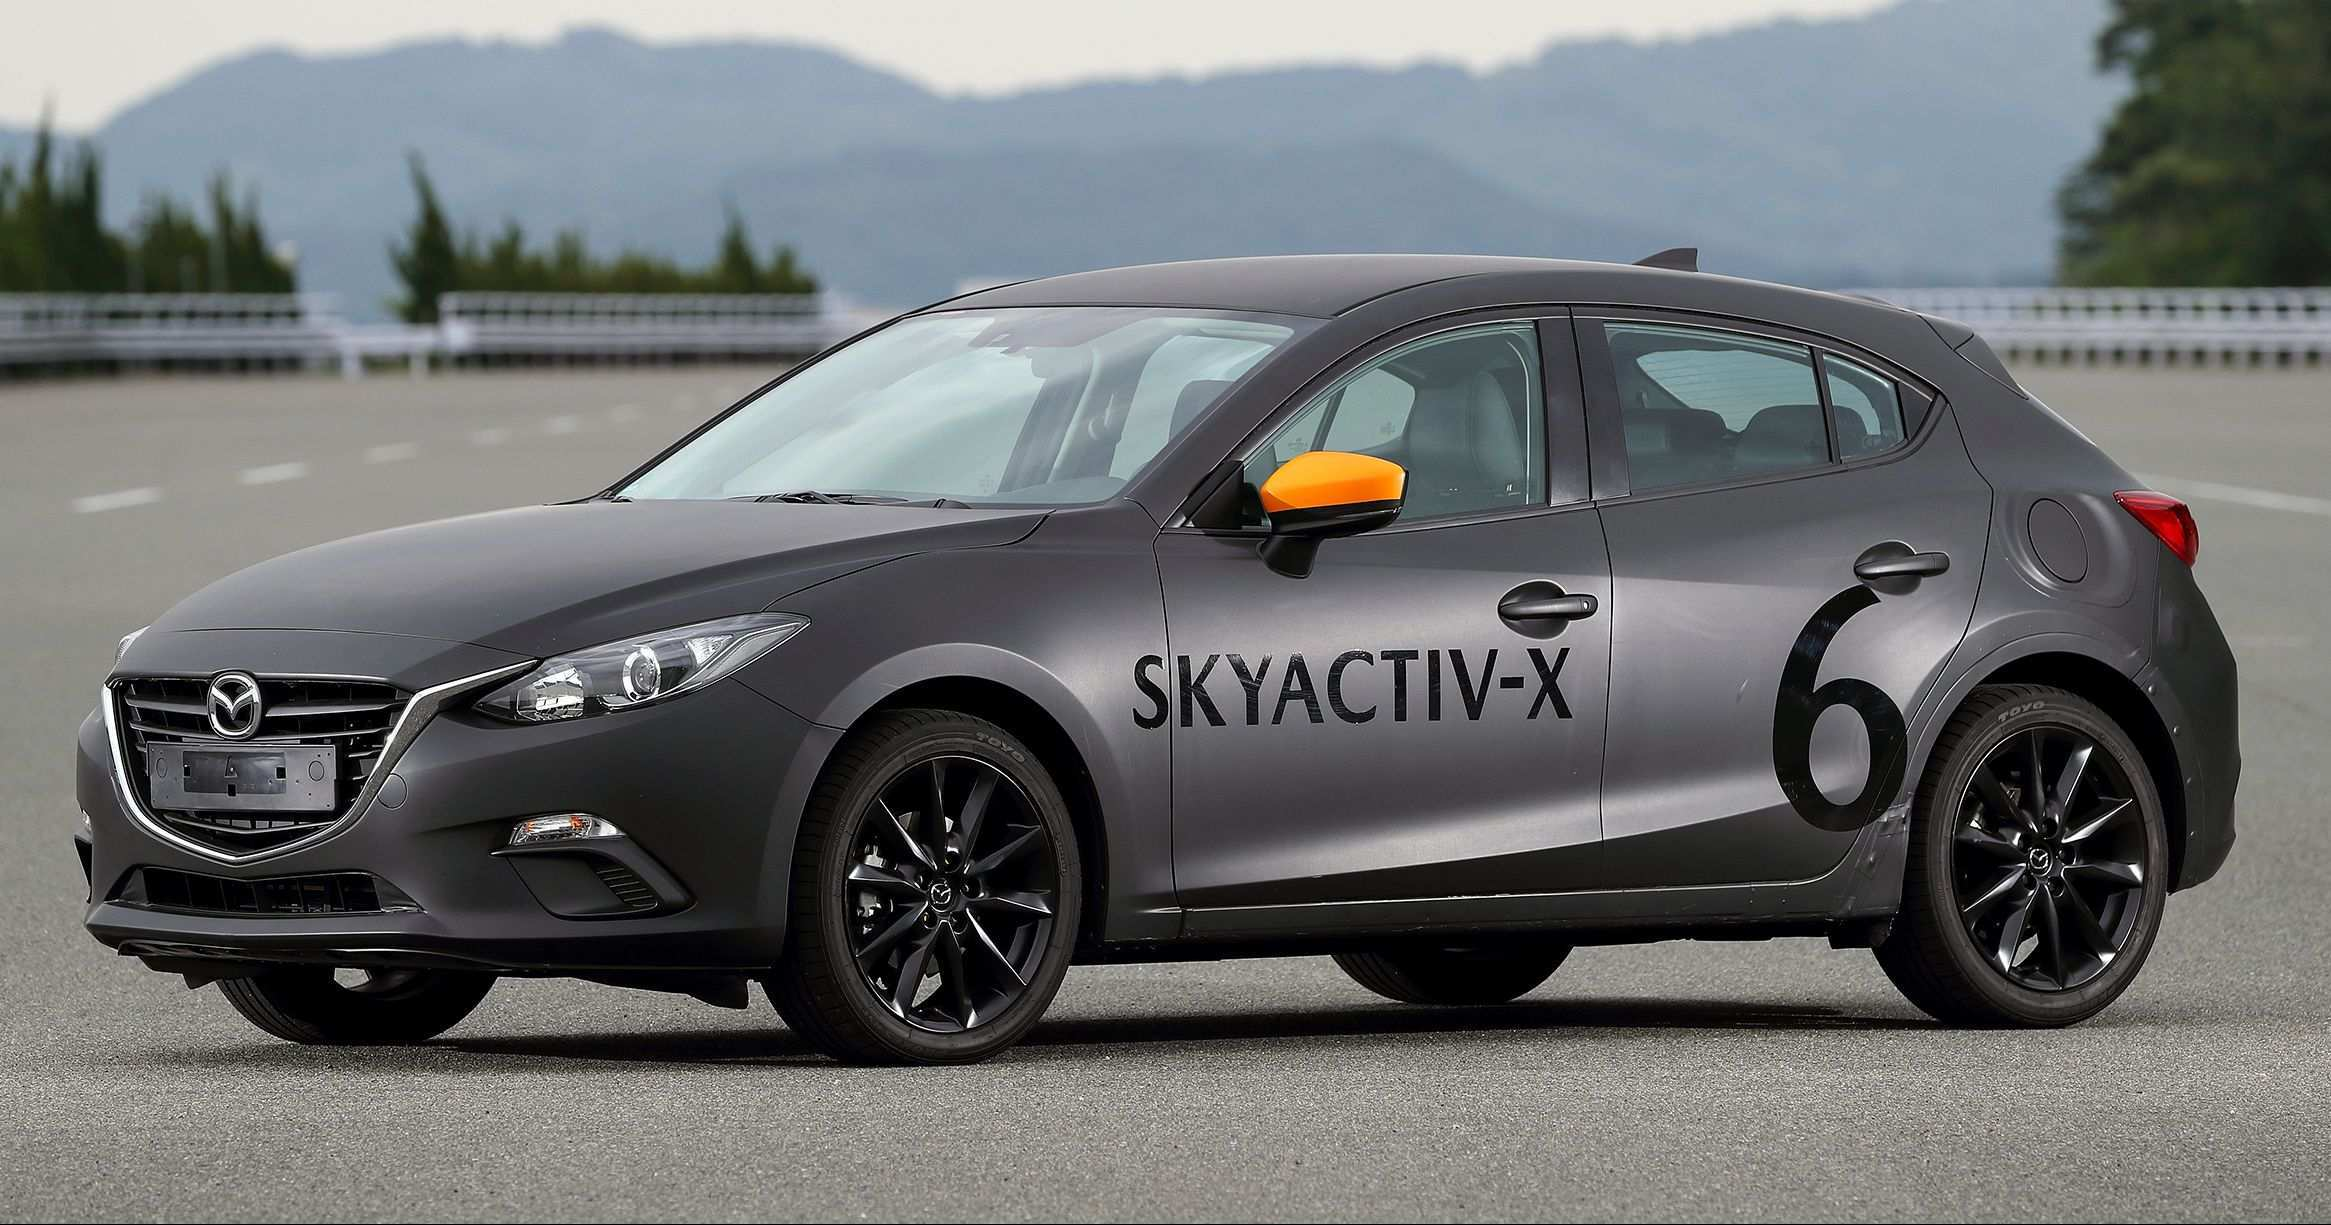 15 New New 2019 Mazda 6 Spy Shots Redesign Price And Review Spy Shoot for New 2019 Mazda 6 Spy Shots Redesign Price And Review